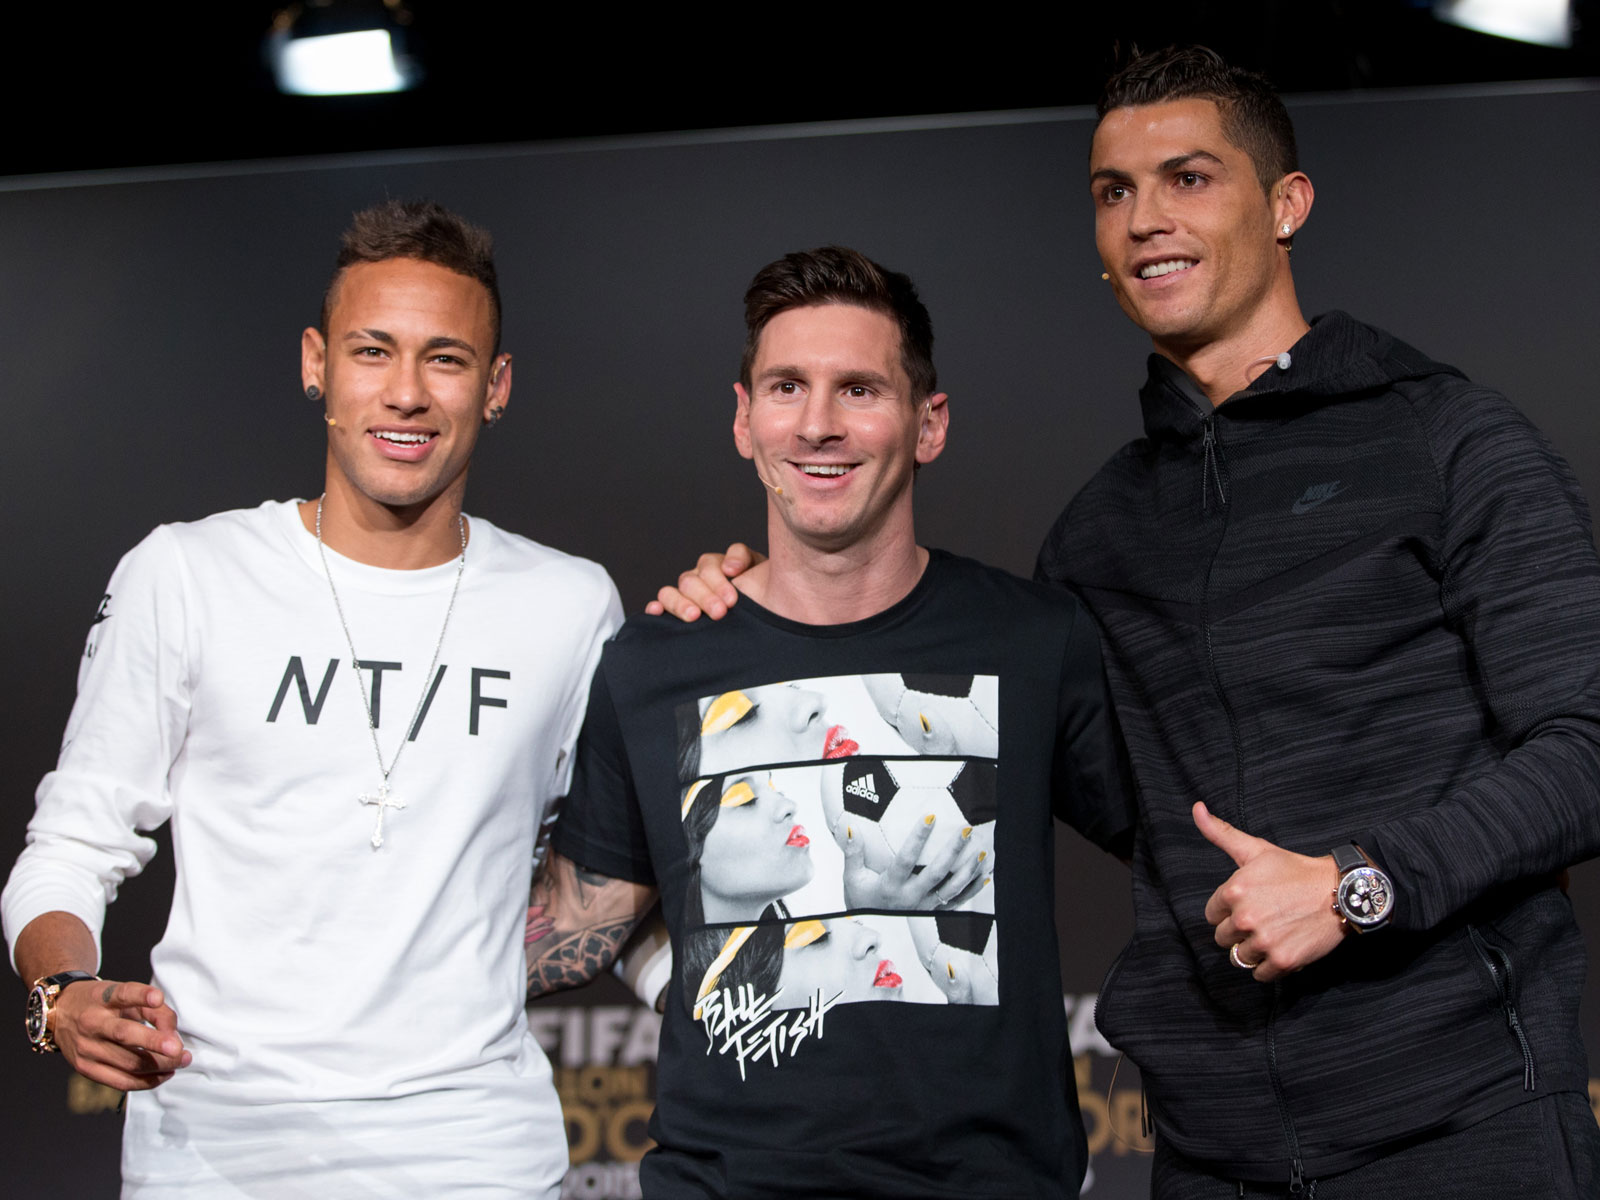 Neymar, Lionel Messi and Cristiano Ronaldo at the 2015 Ballon d'Or ceremony